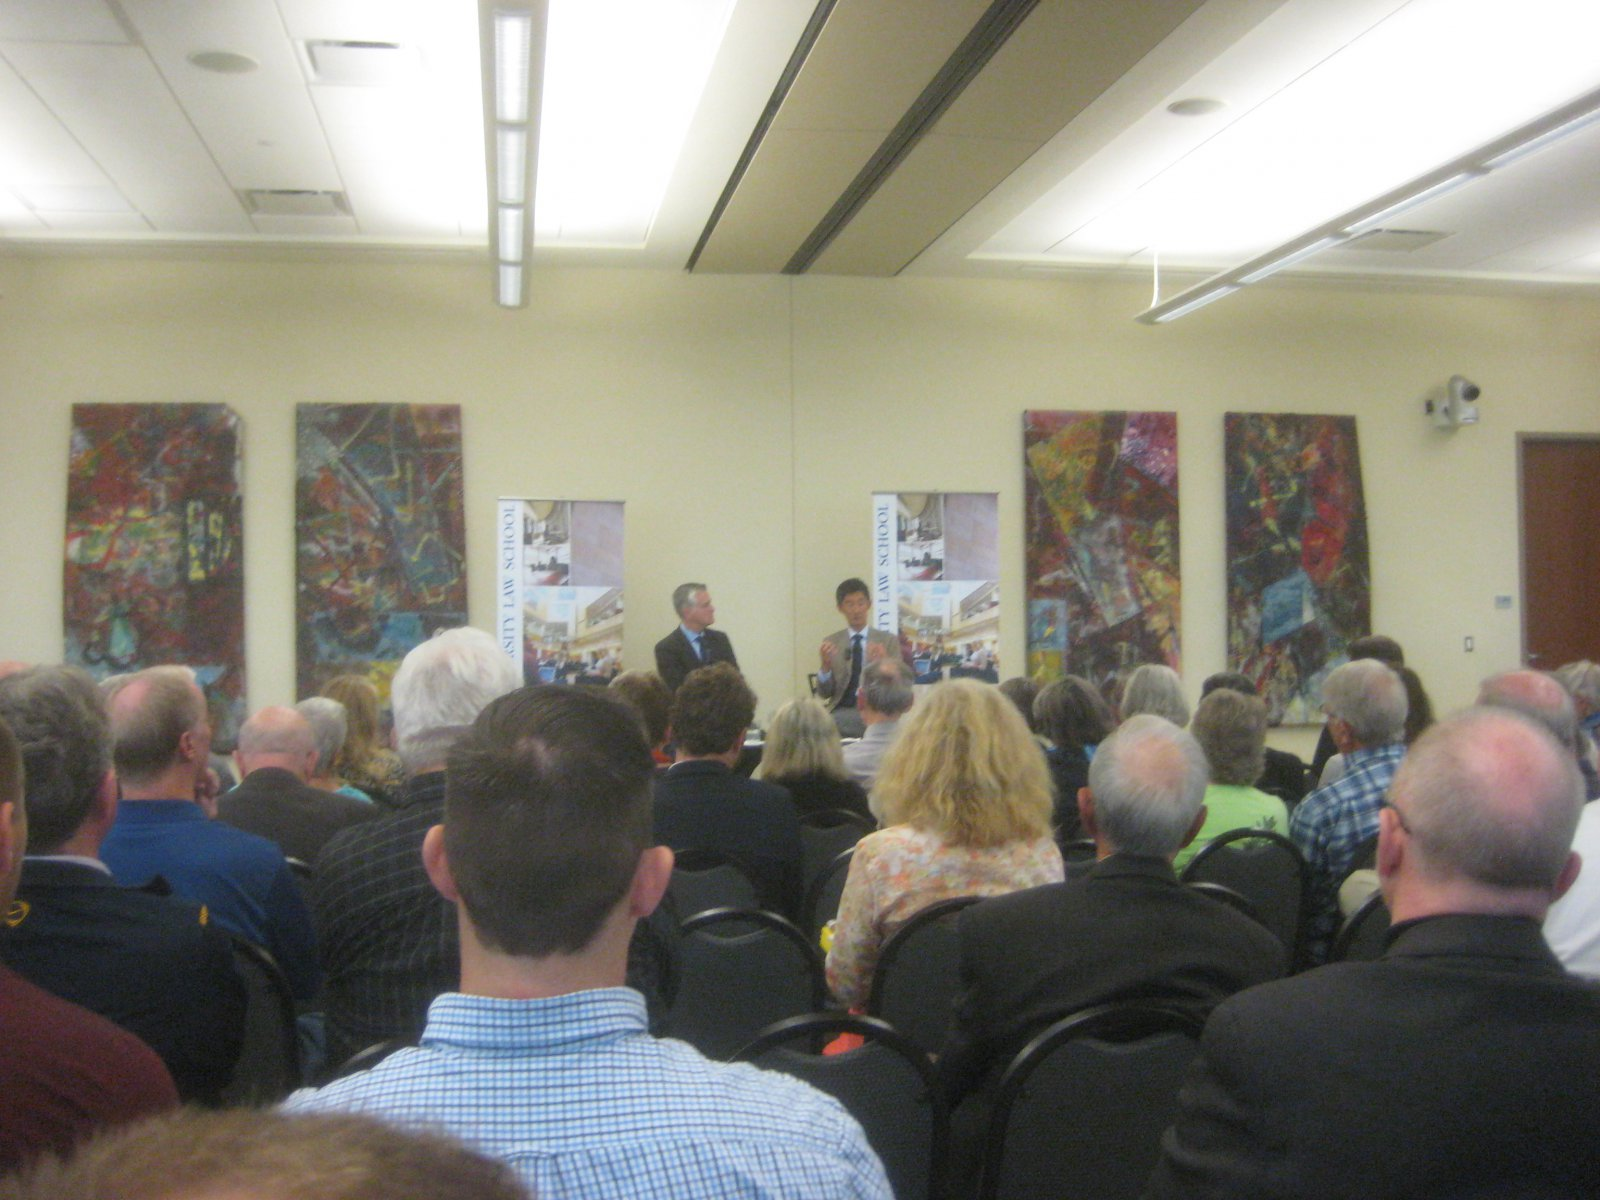 A capacity crowd came out to see Peter Park